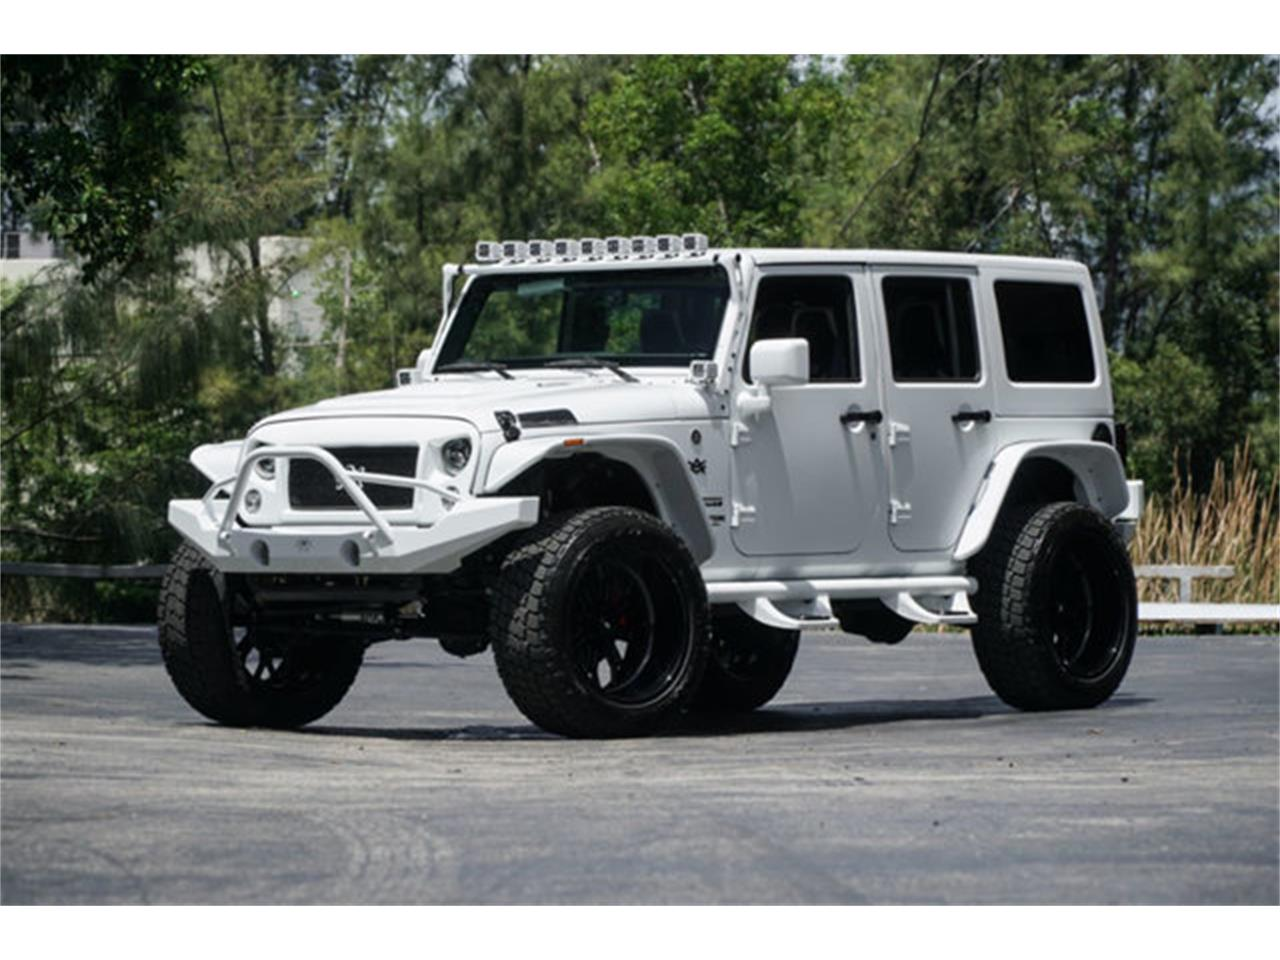 Large Picture of 2018 Jeep Wrangler located in Florida - $51,900.00 Offered by The Garage - Q4VB